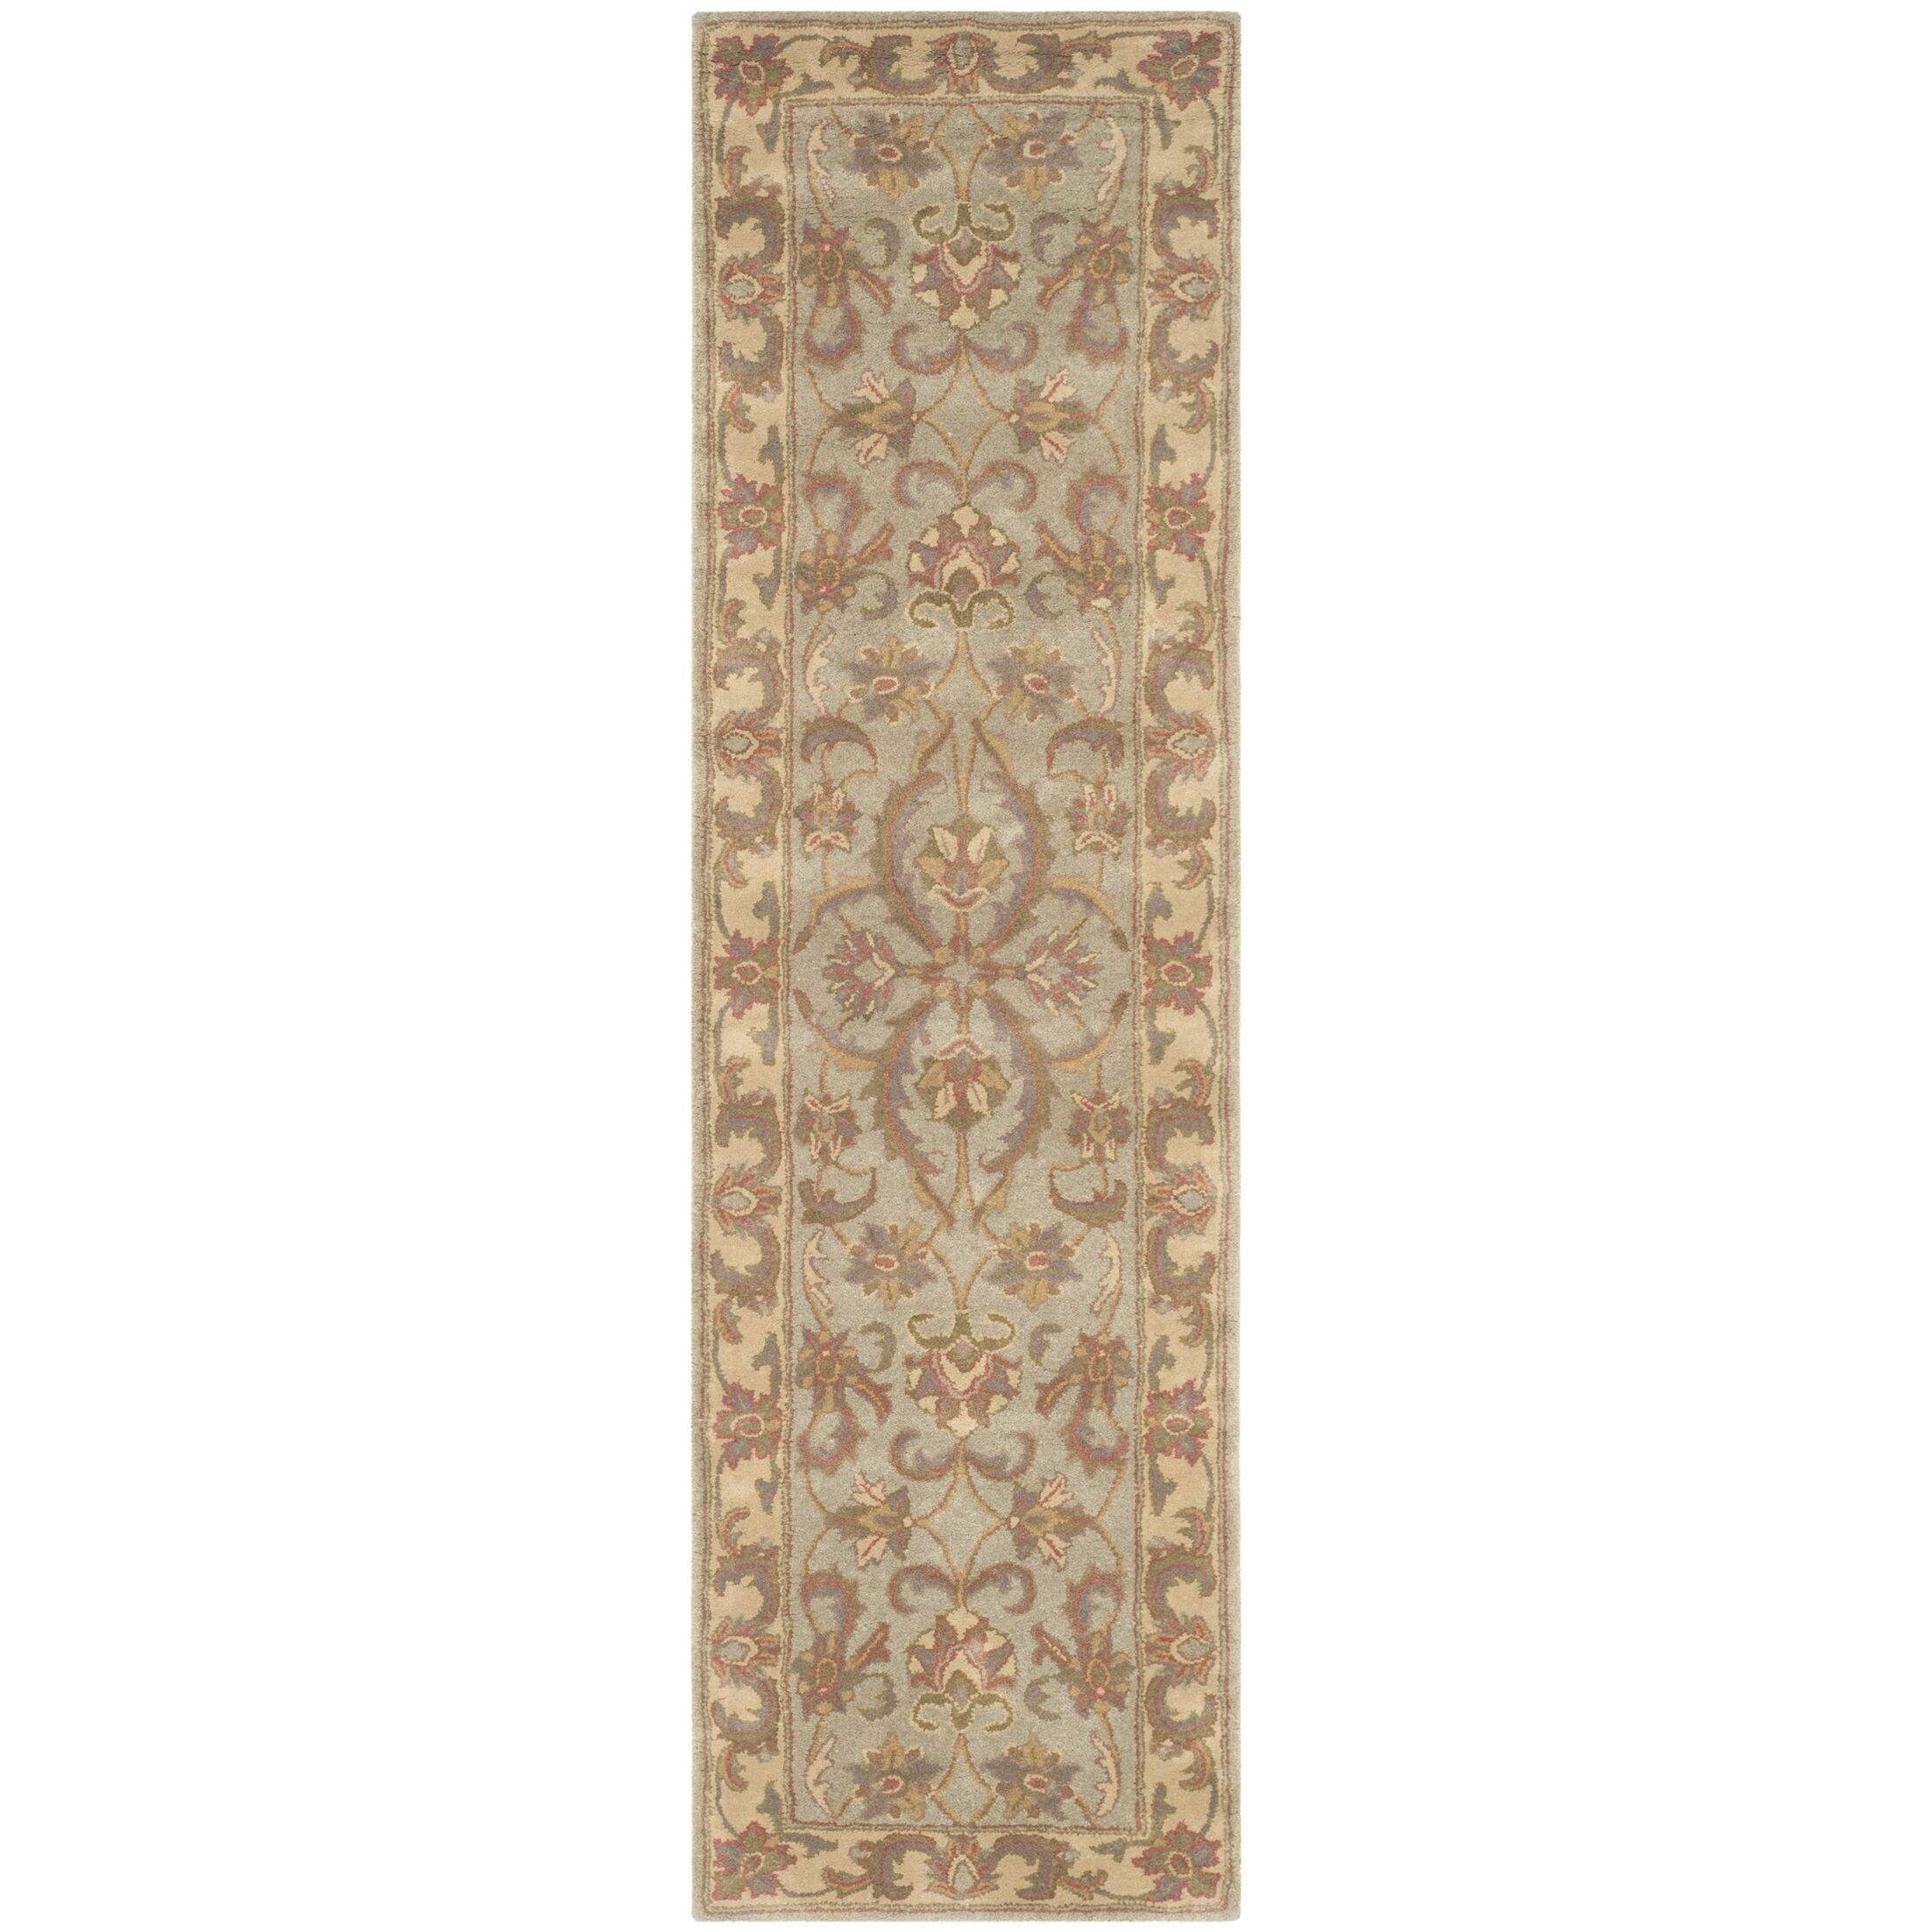 Taylor Hand-Tufted Wool Green/Gold Area Rug Rug Size: Runner 2'3